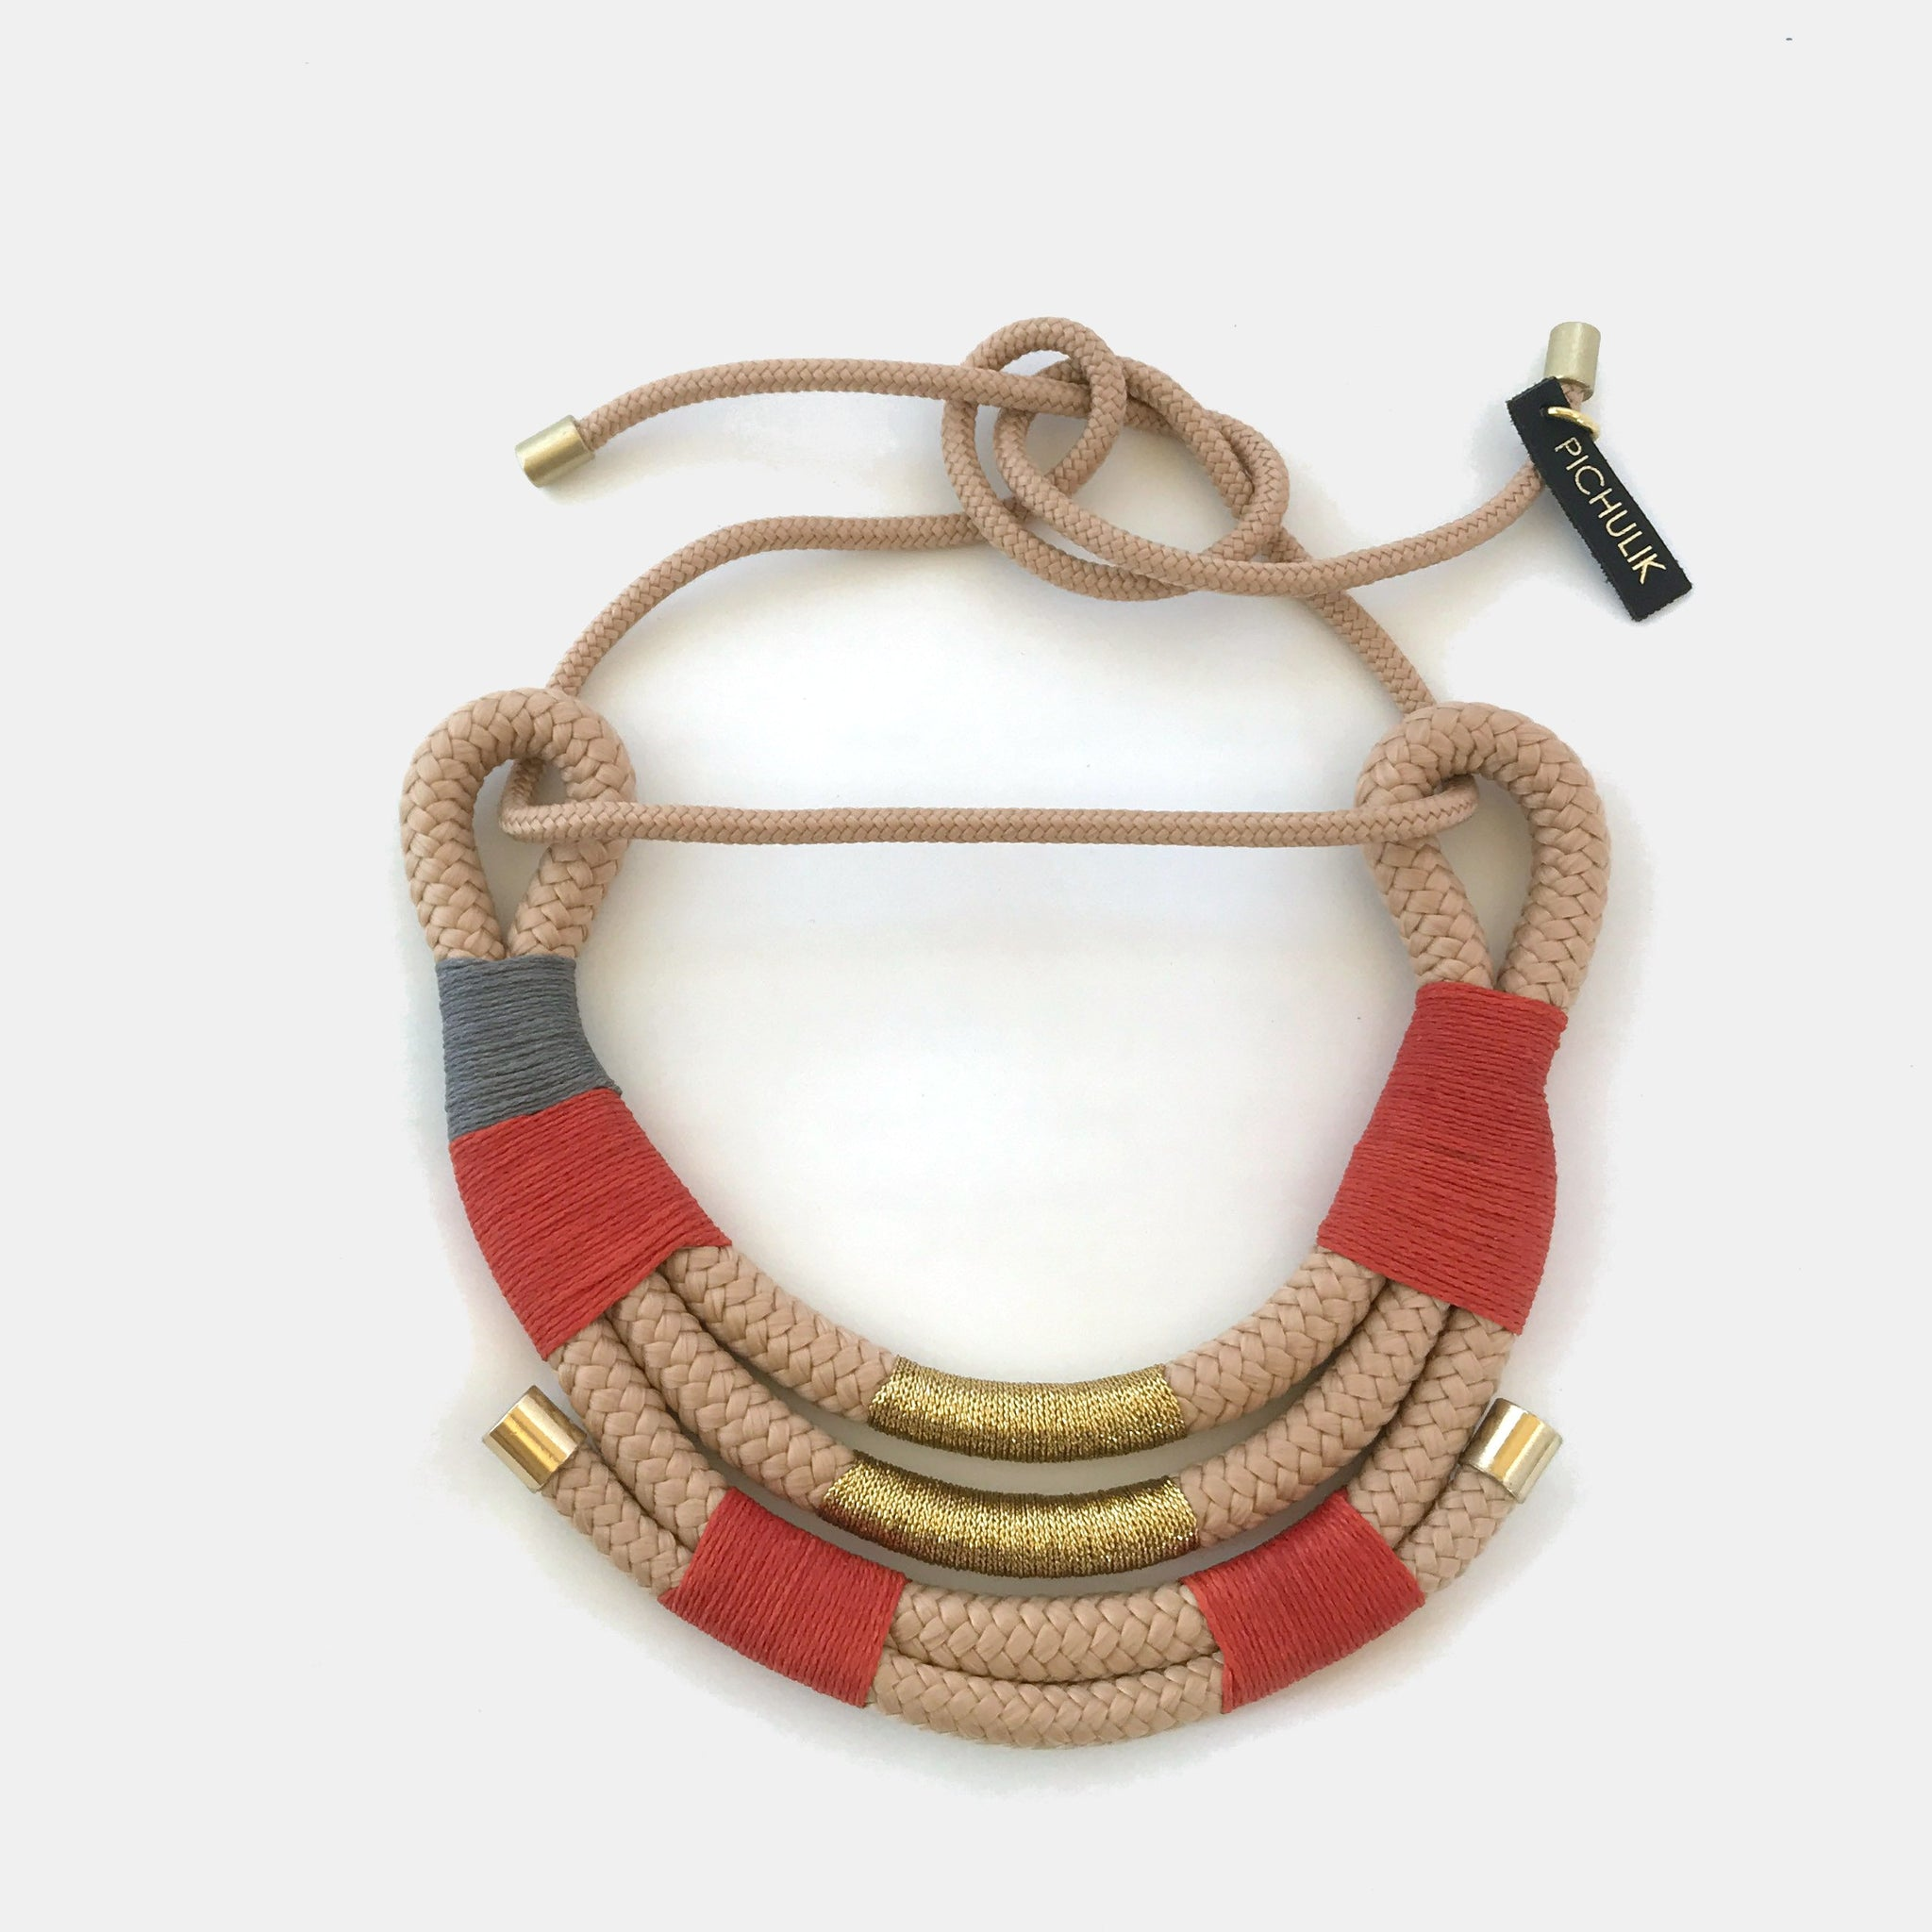 Beige & Winter Mali Necklace